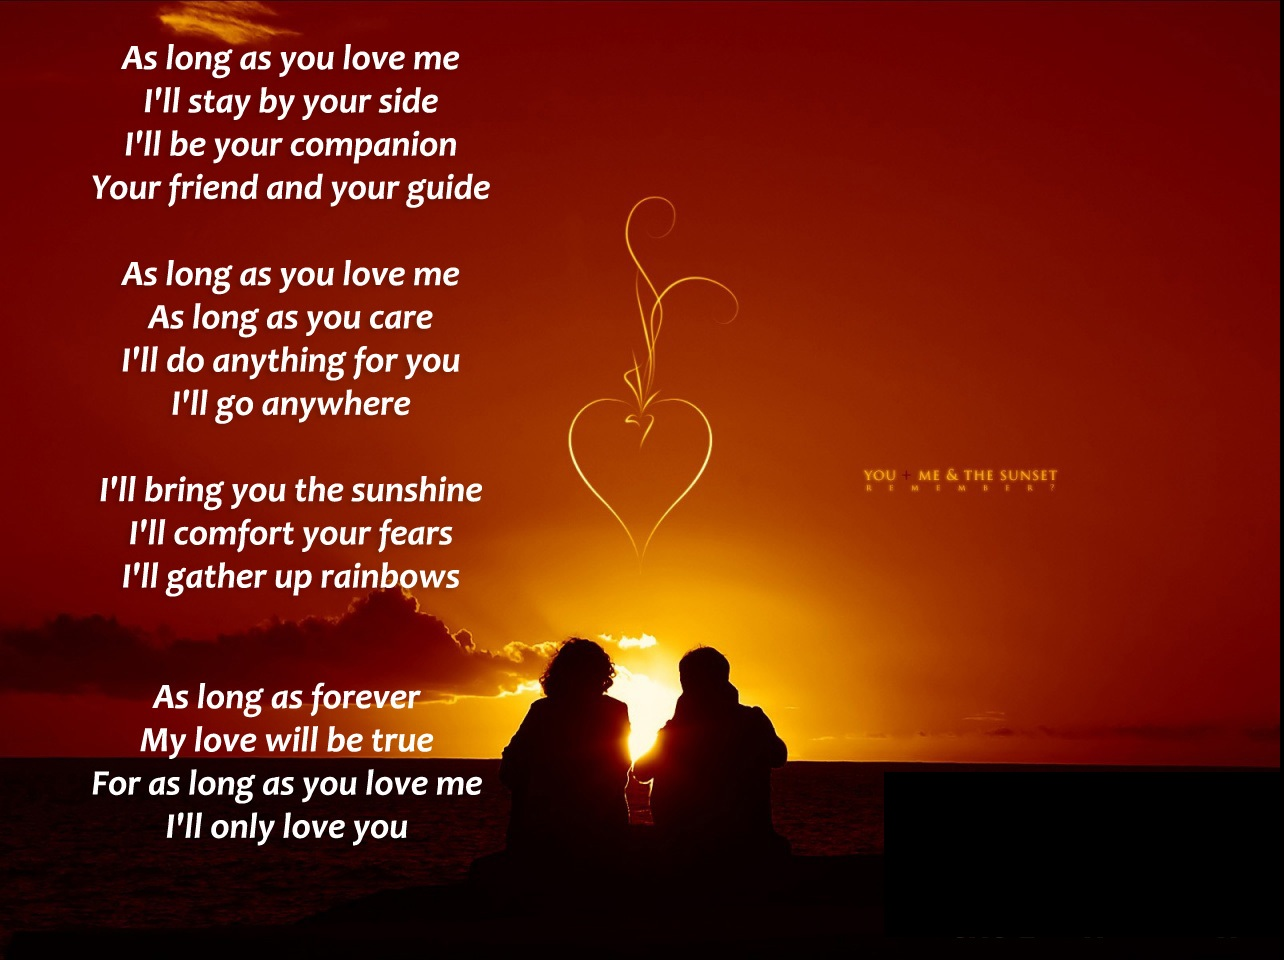 25 doting love poems picshunger for Love quotes for card